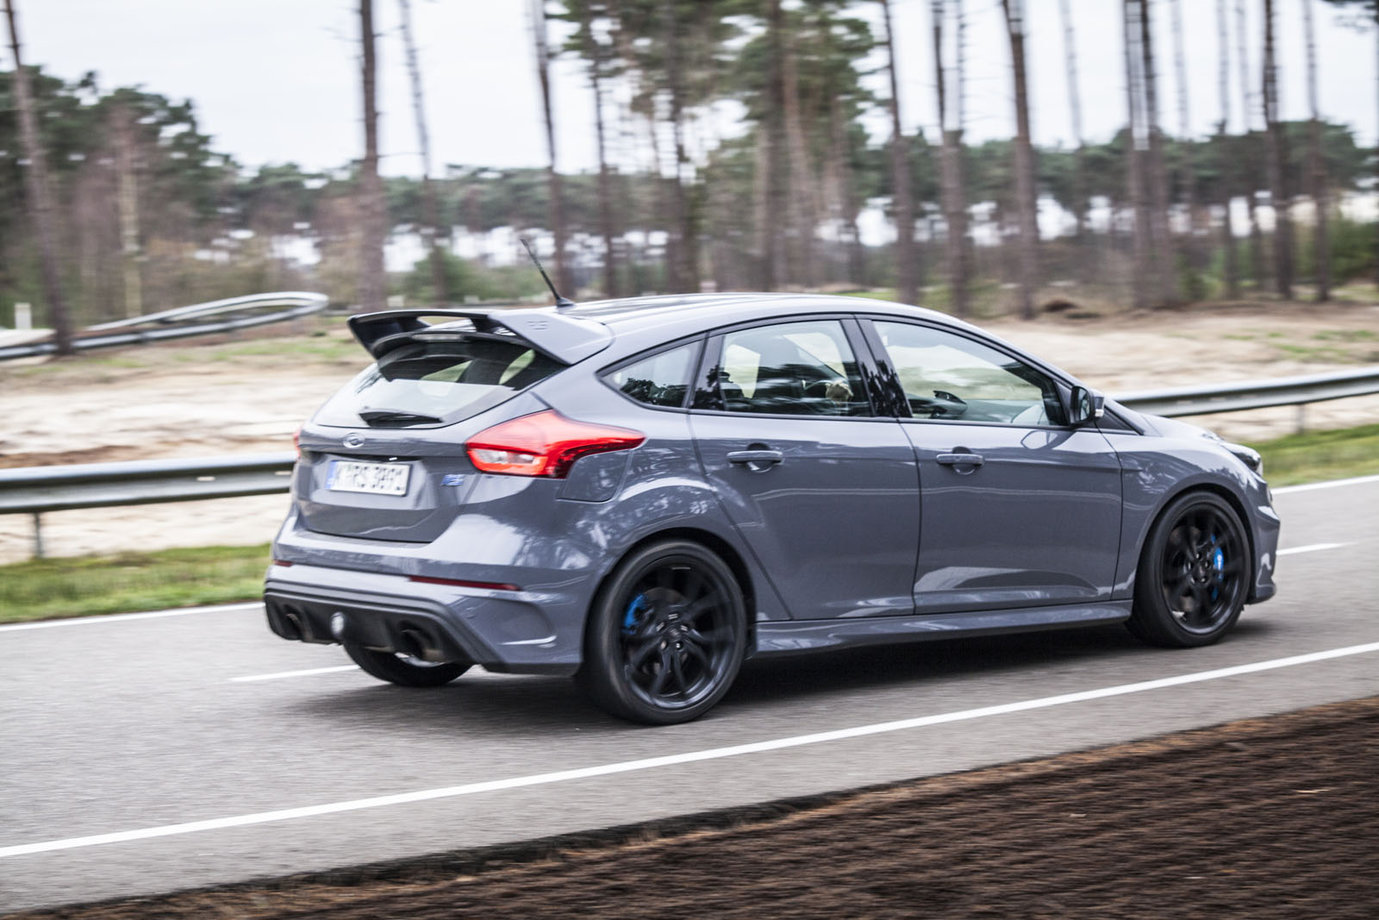 2018 Focus St Release Date >> 2019 Ford Focus Rs | 2017, 2018, 2019 Ford Price, Release Date, Reviews